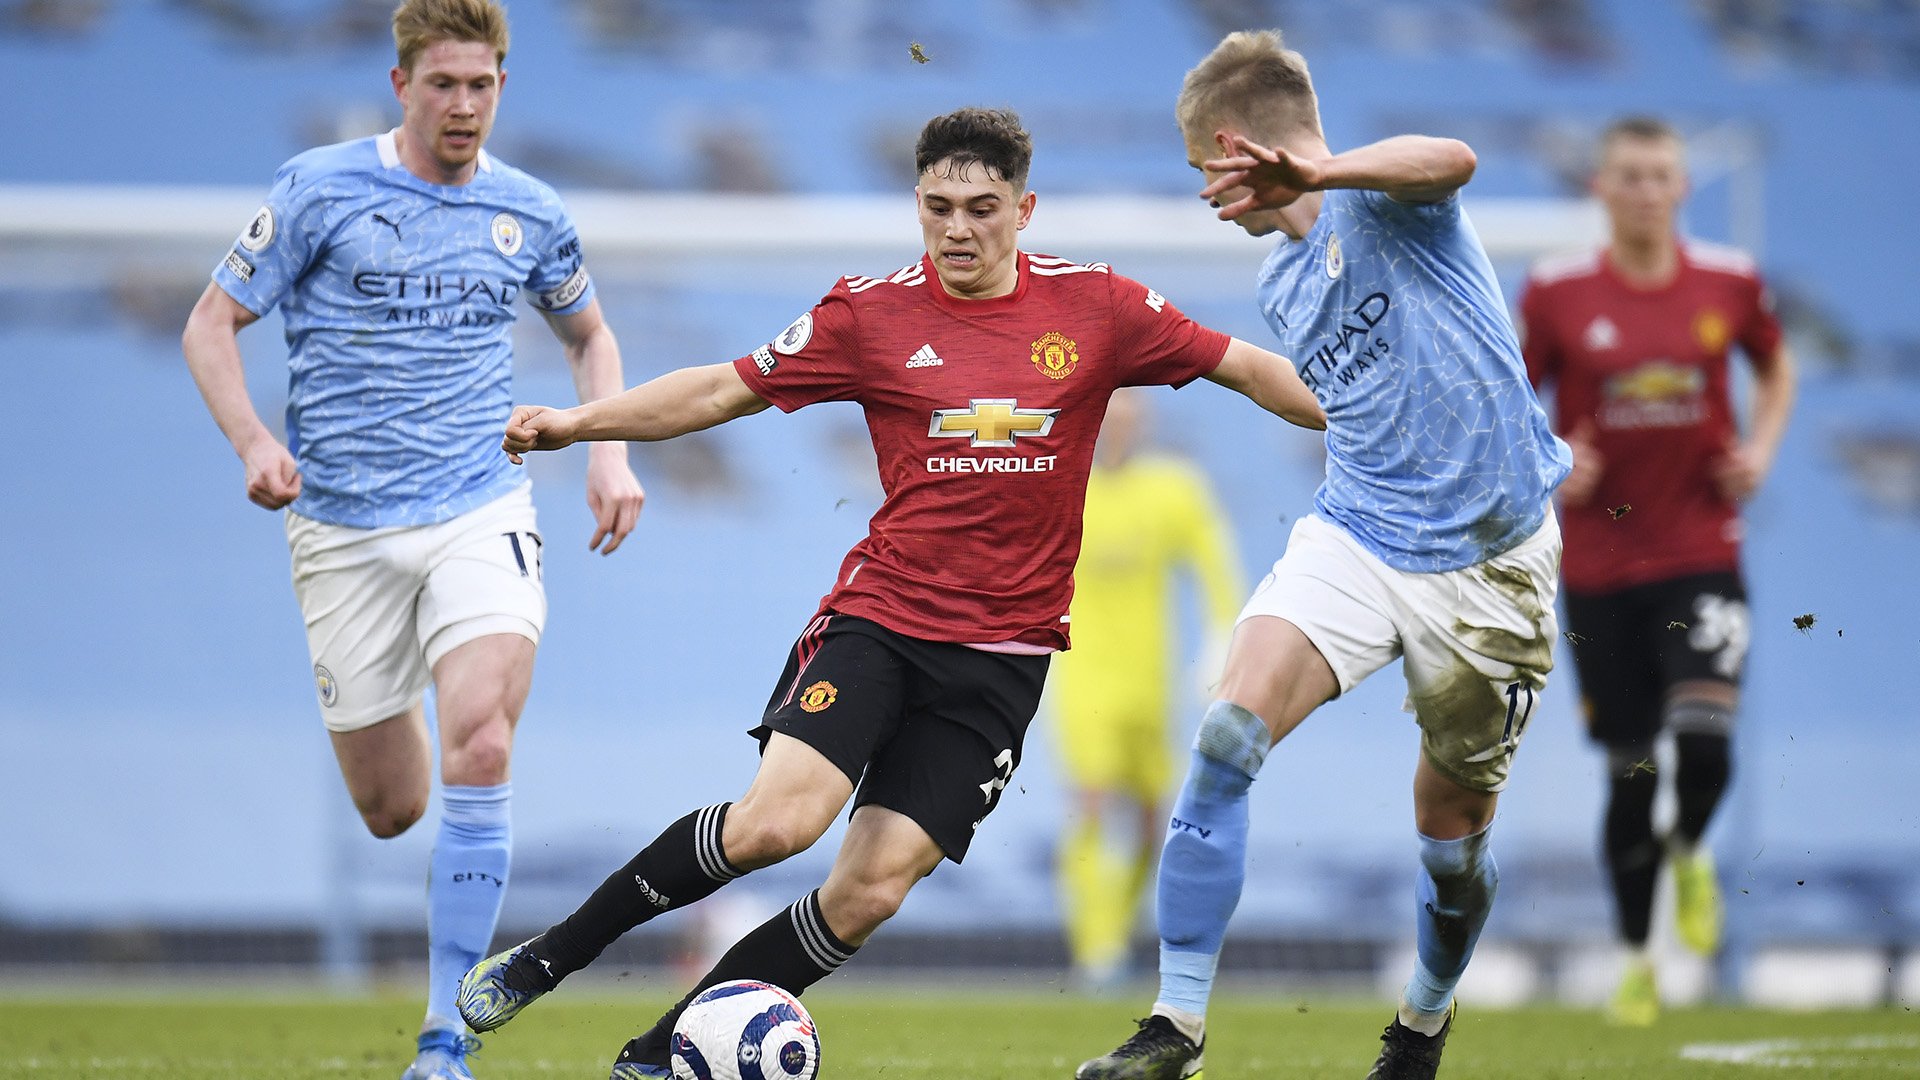 Extended highlights: Manchester City 0, Manchester United 2 | NBC Sports